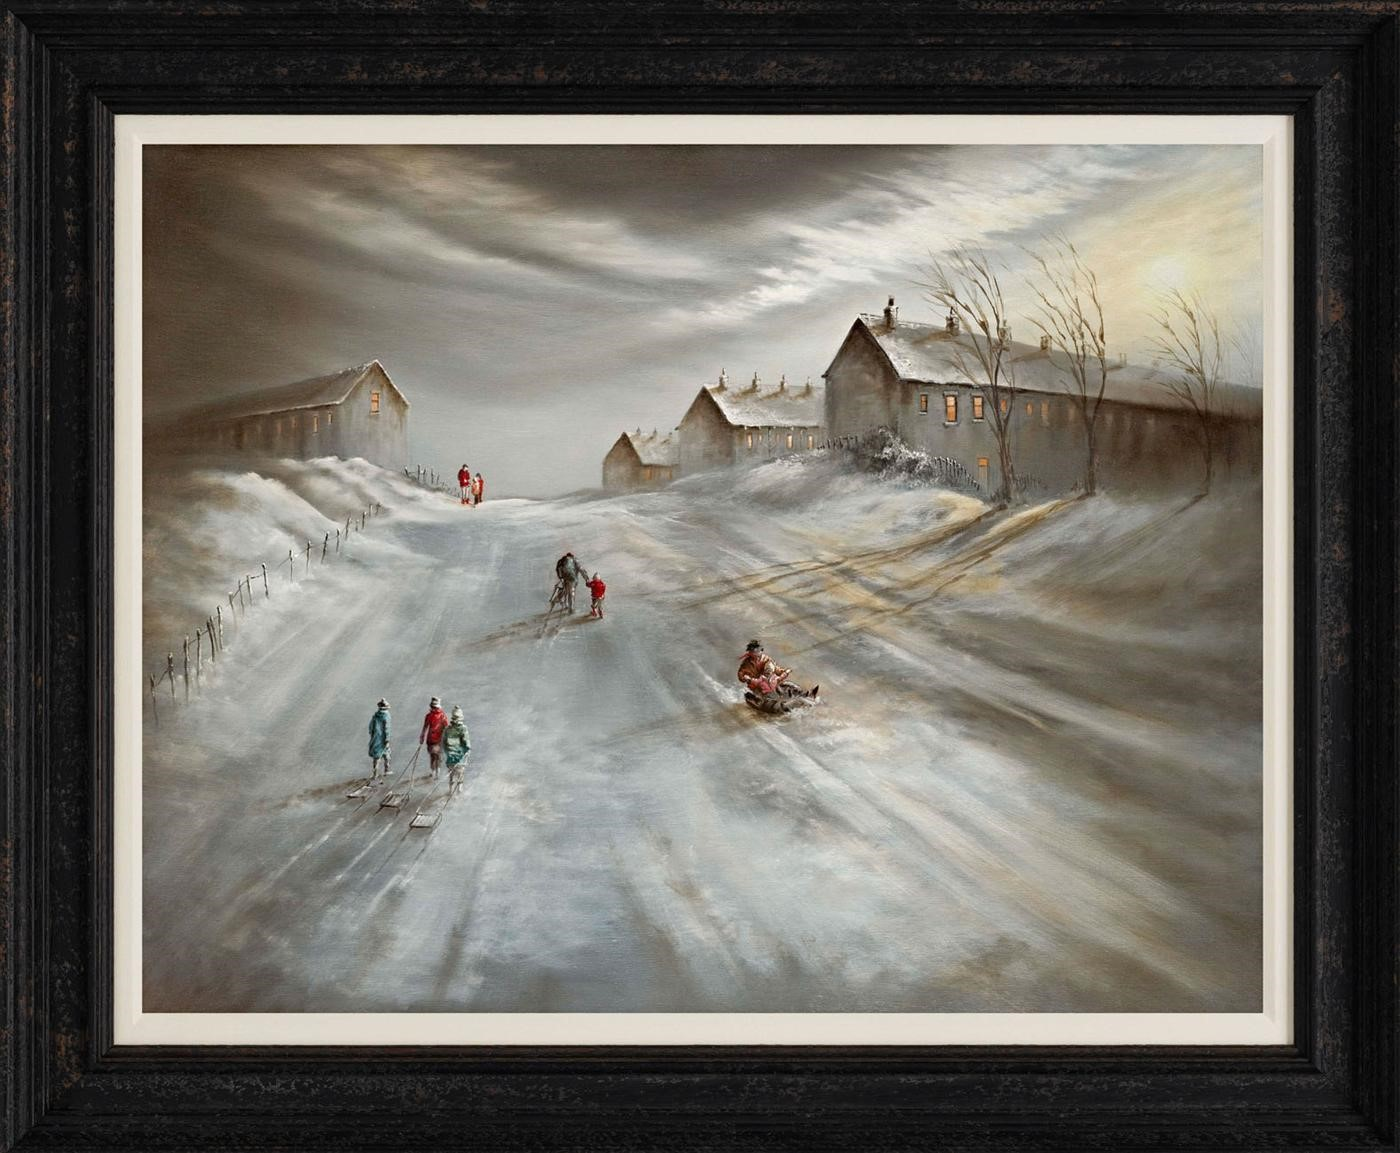 Whale of a Time by Bob Barker, Children | Nostalgic | Northern | Snow